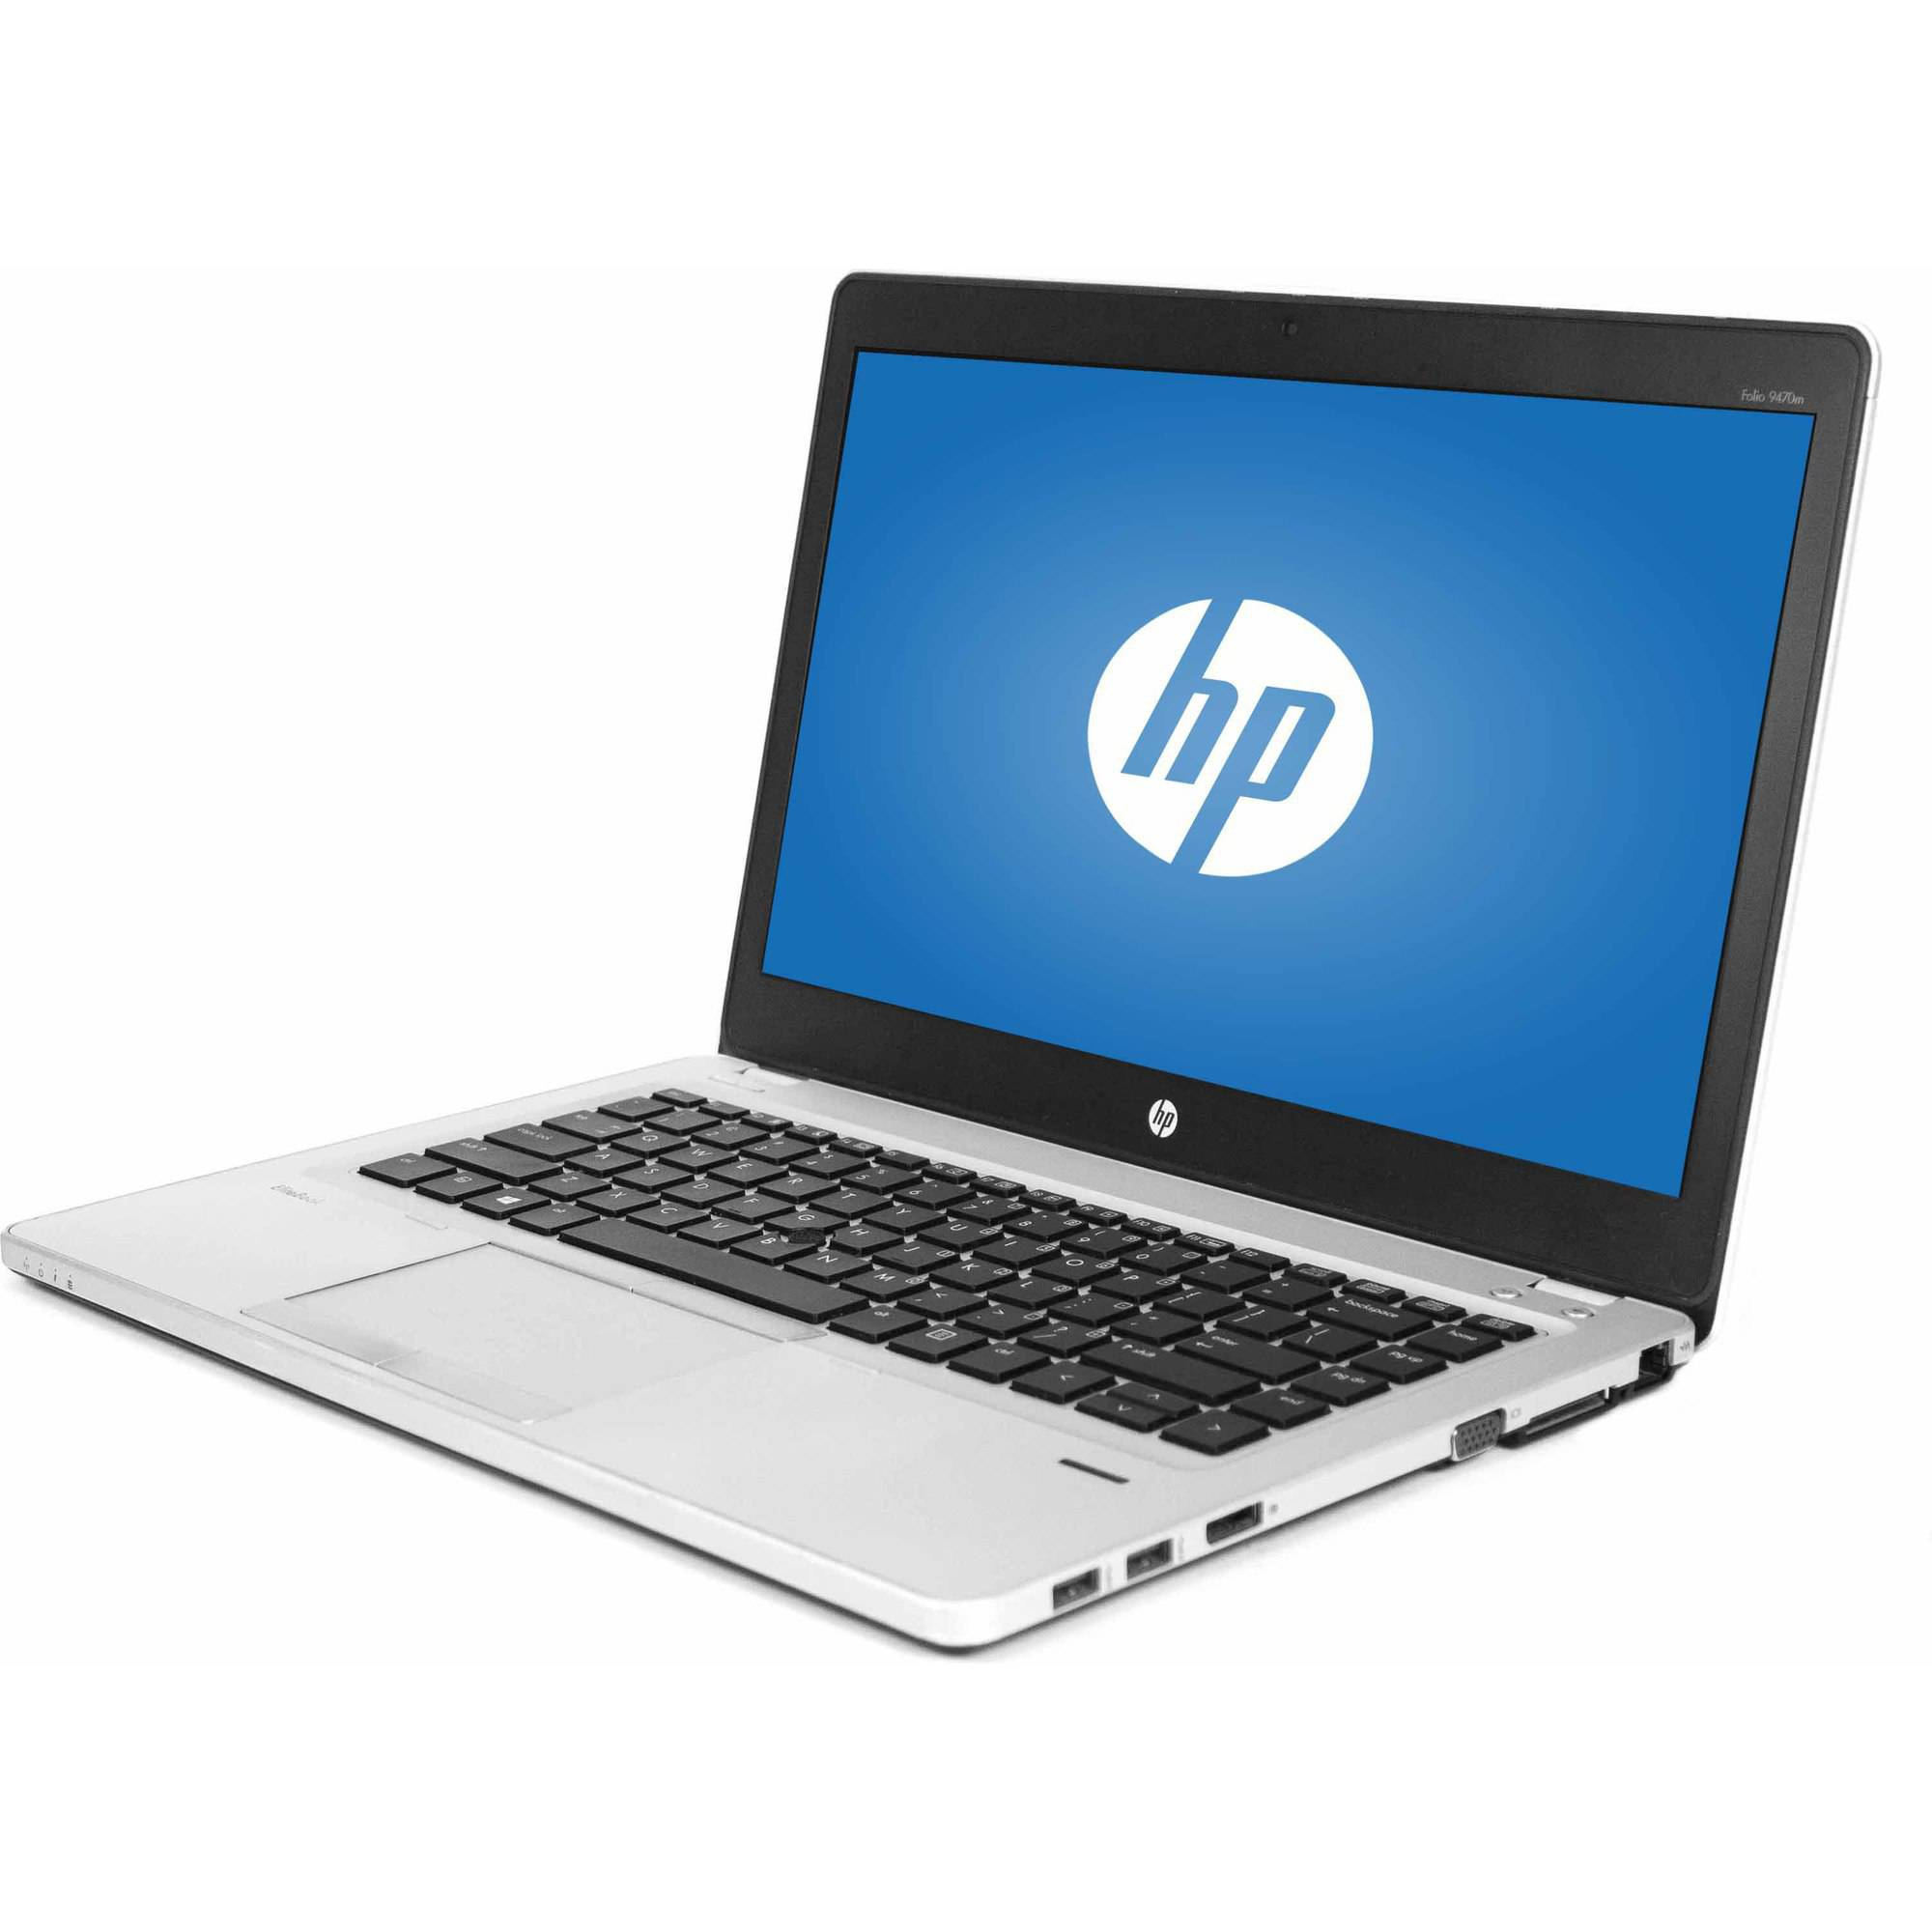 "Refurbished HP Silver 14"" Folio EliteBook 9470M Laptop PC with Intel Core i5-3437U Processor, 16GB Memory, 750GB Hard Drive and Windows 7 Professional"